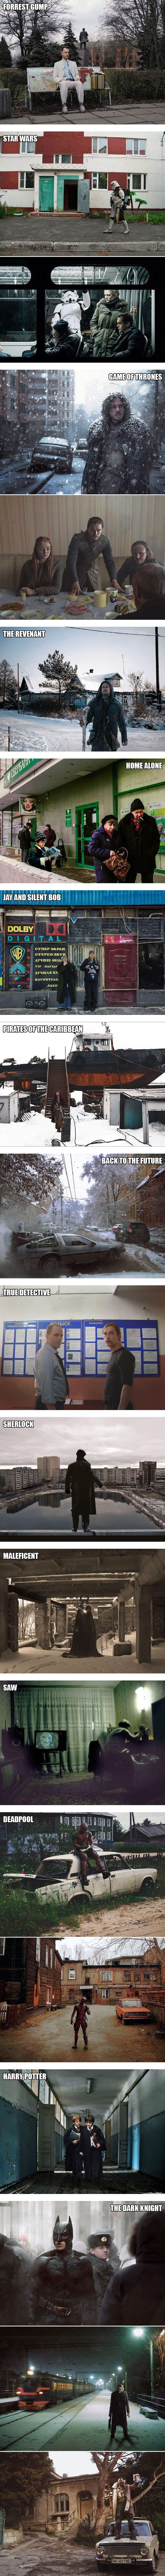 If popular movies & tv shows were made in Russia